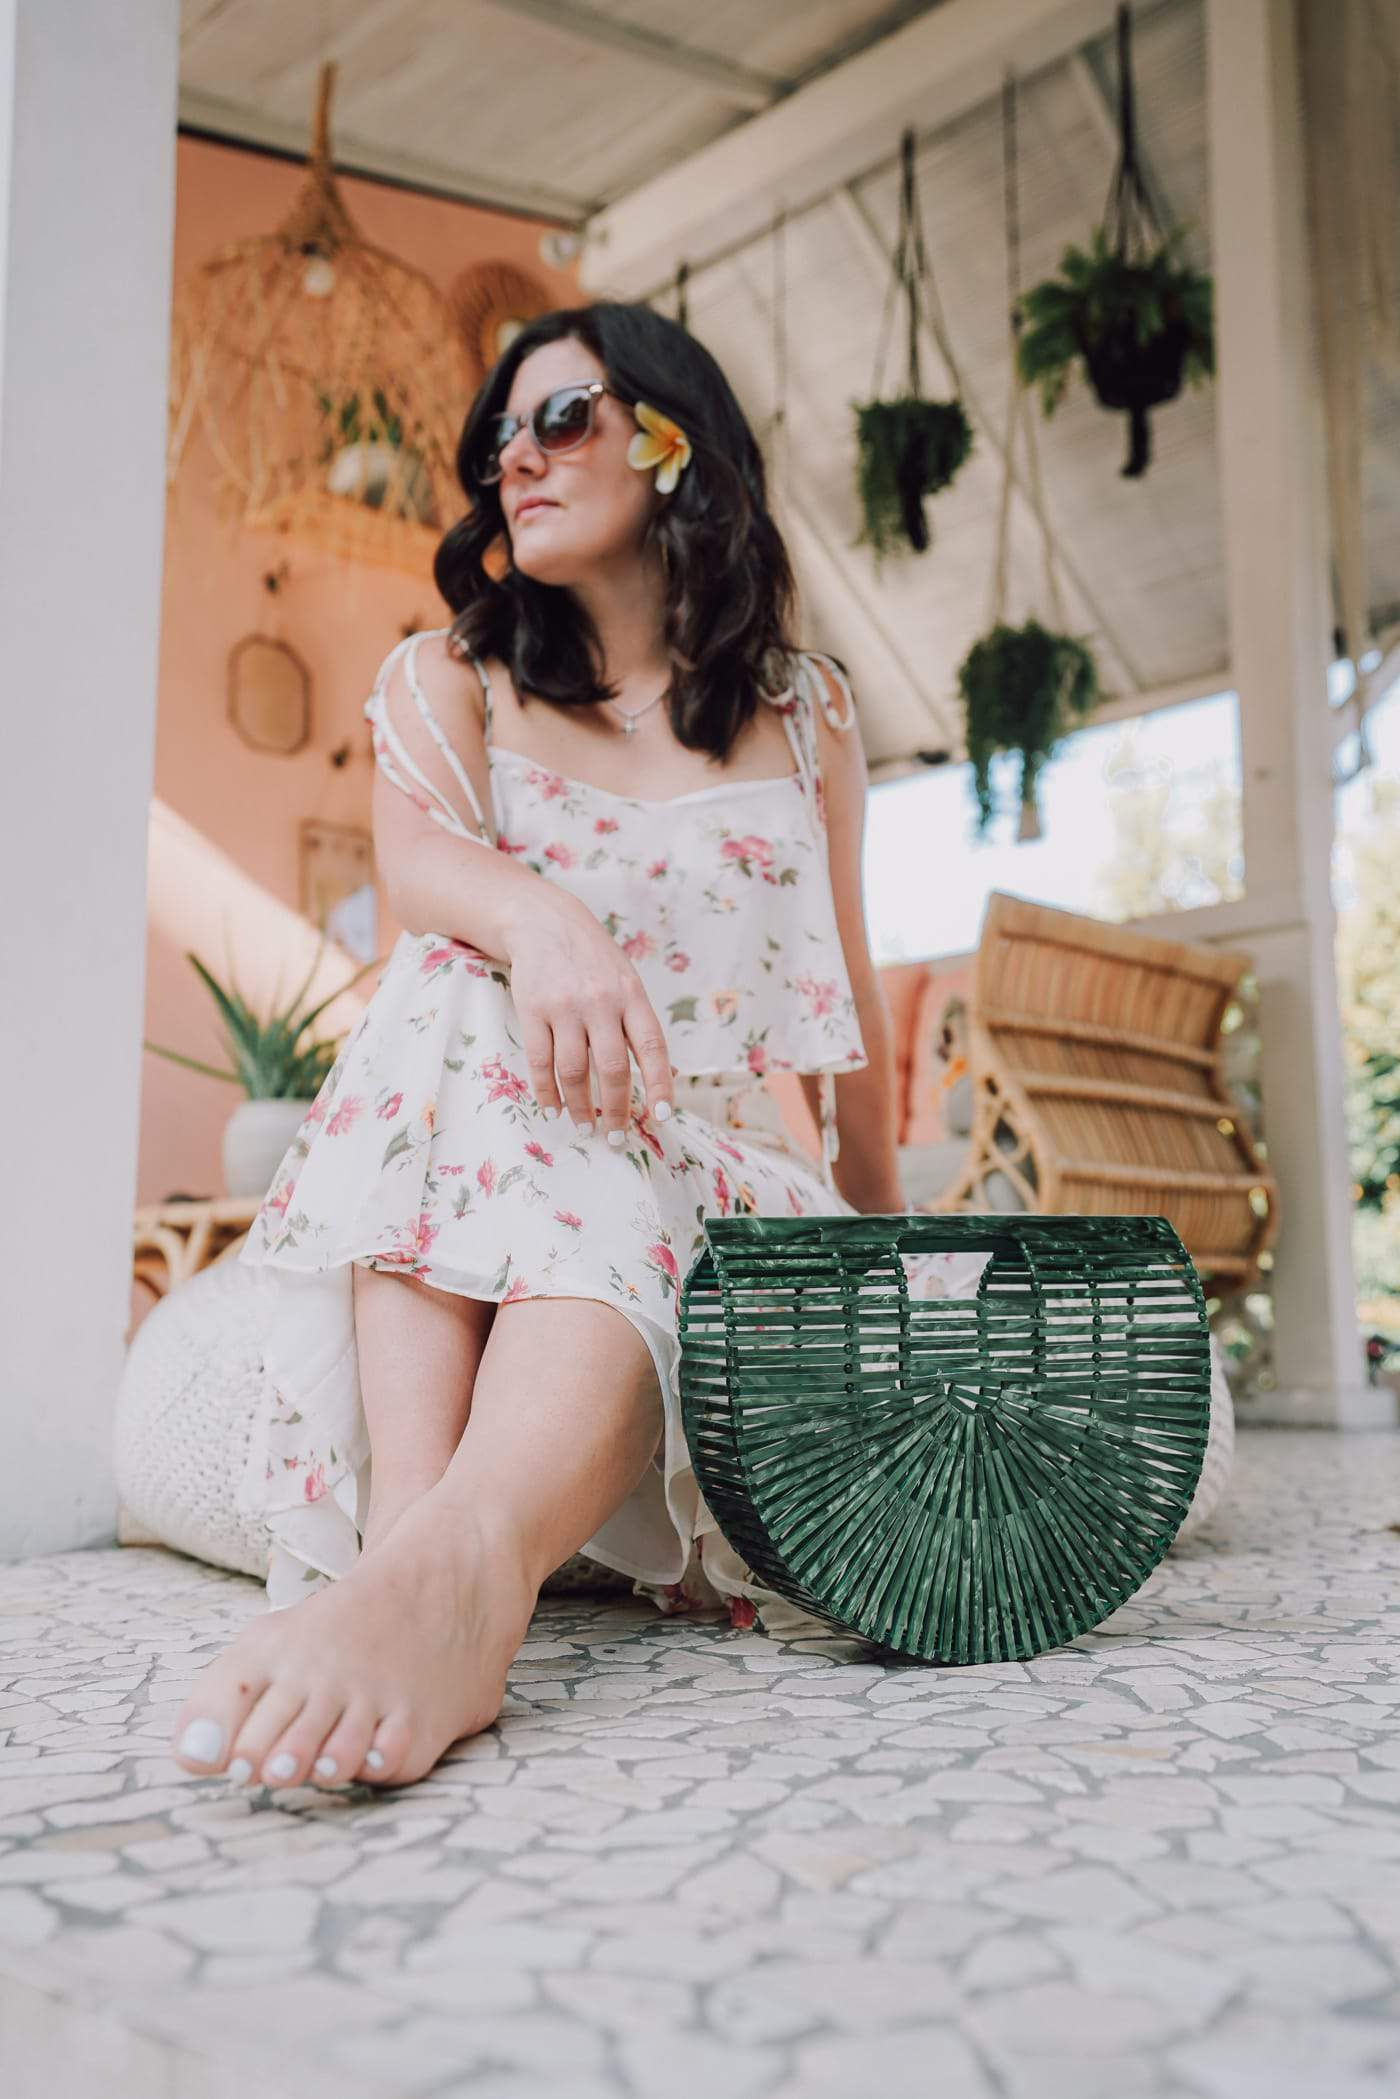 Looking for what to wear in Bali, Bali packing list, vacation style advice and Bali travel tips? We have you covered! Today's post is a Bali packing list filled with affordable swimsuits, affordable yoga gear, gorgeous dresses perfect for helping you get the most our of your trip to Bali. #swimsuits #travelstyle #bali #affordableswimsuits #dresses